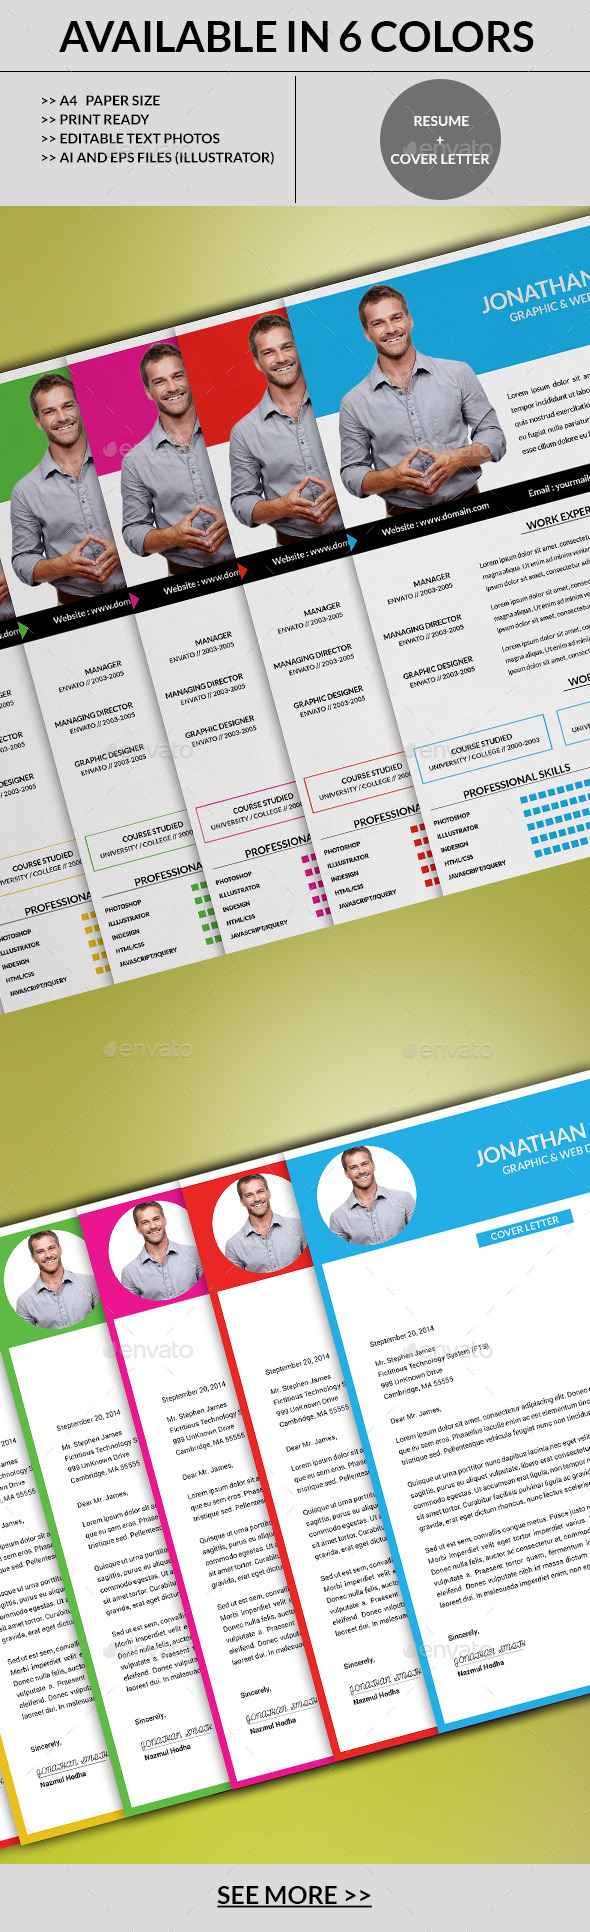 GraphicRiver 6 Color Varition Resume Set 8989254